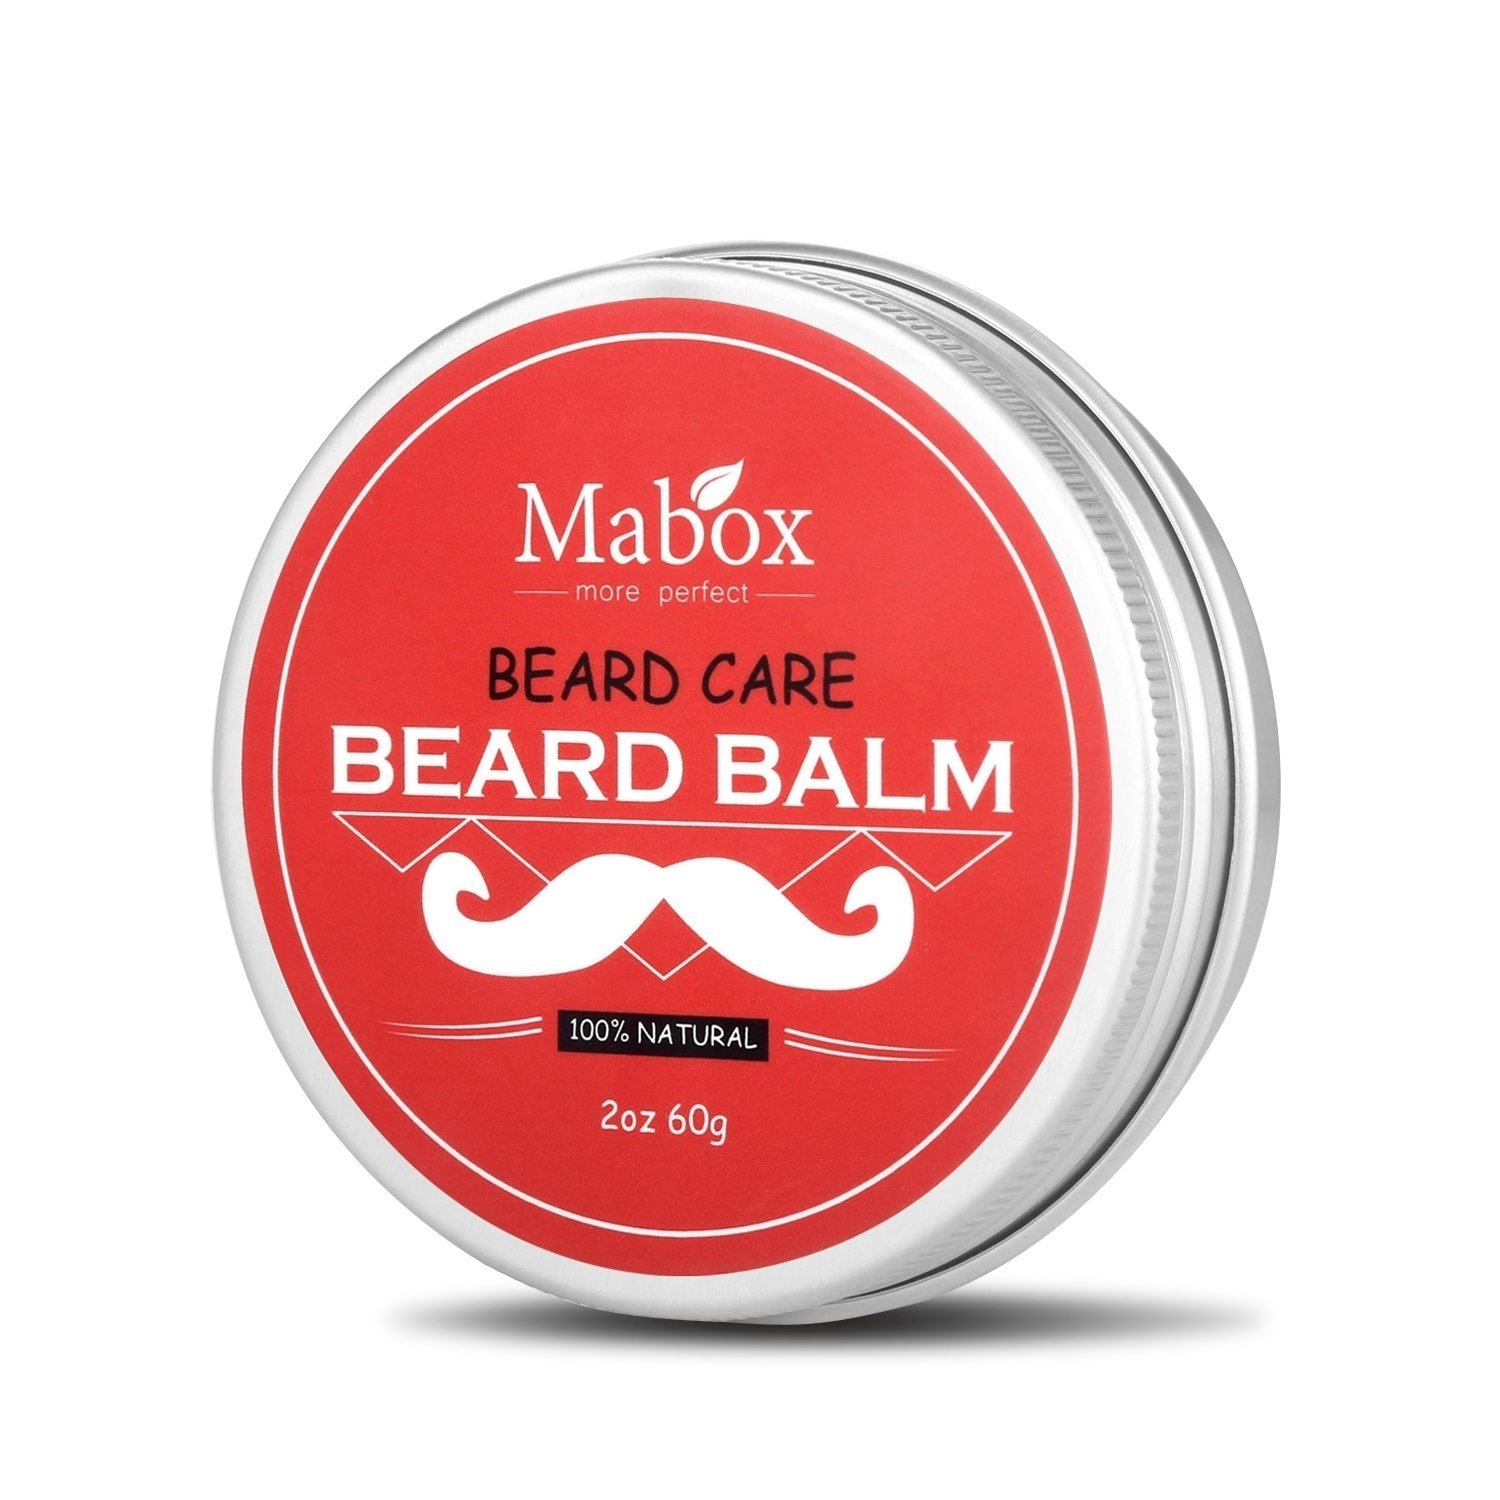 Mabox 100% Natural Beard Balm